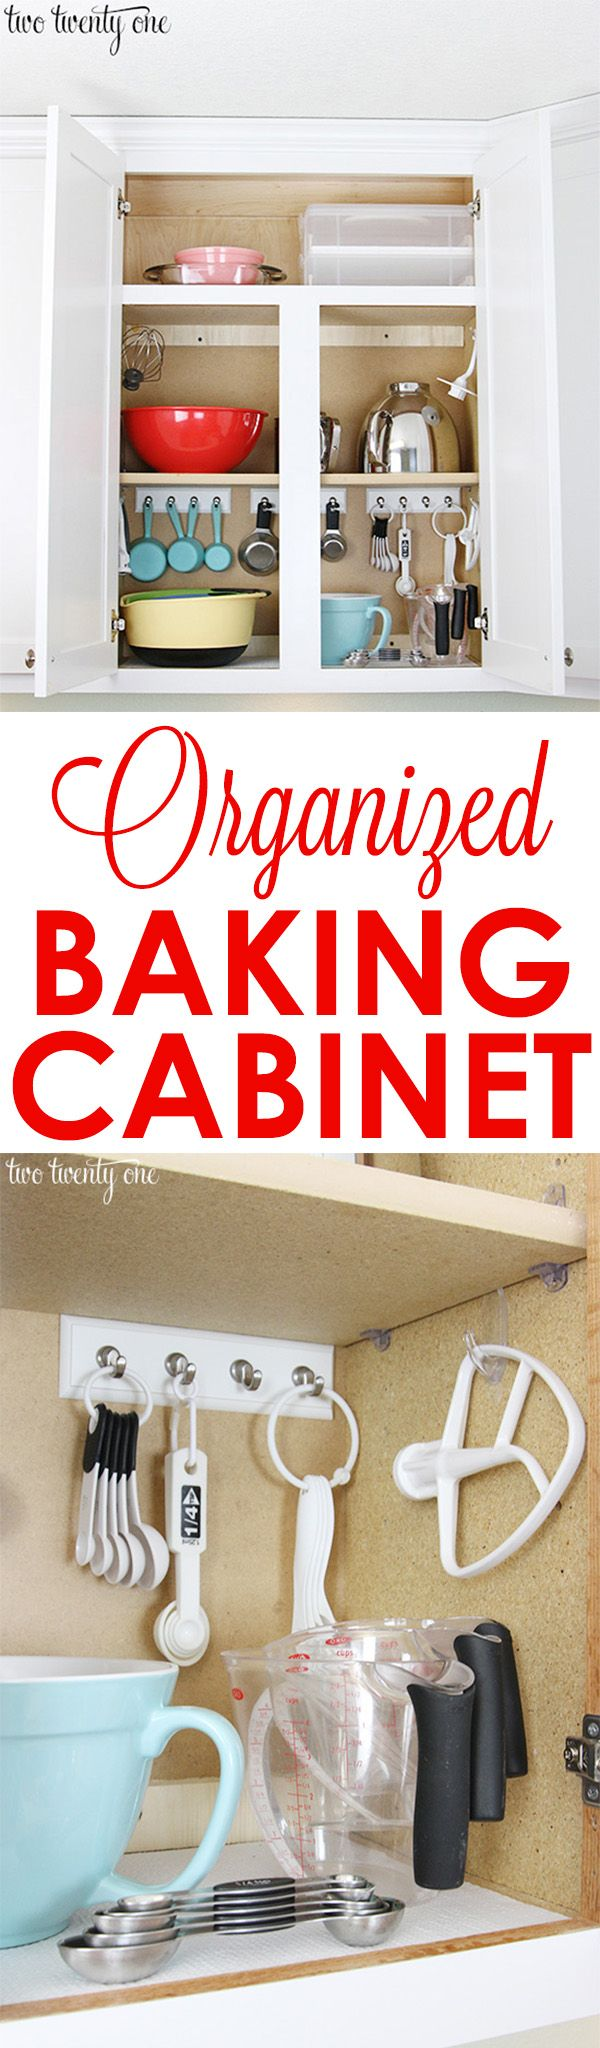 Ideas for kitchen organization - 10 Organizing Tips Whimsy Wednesday